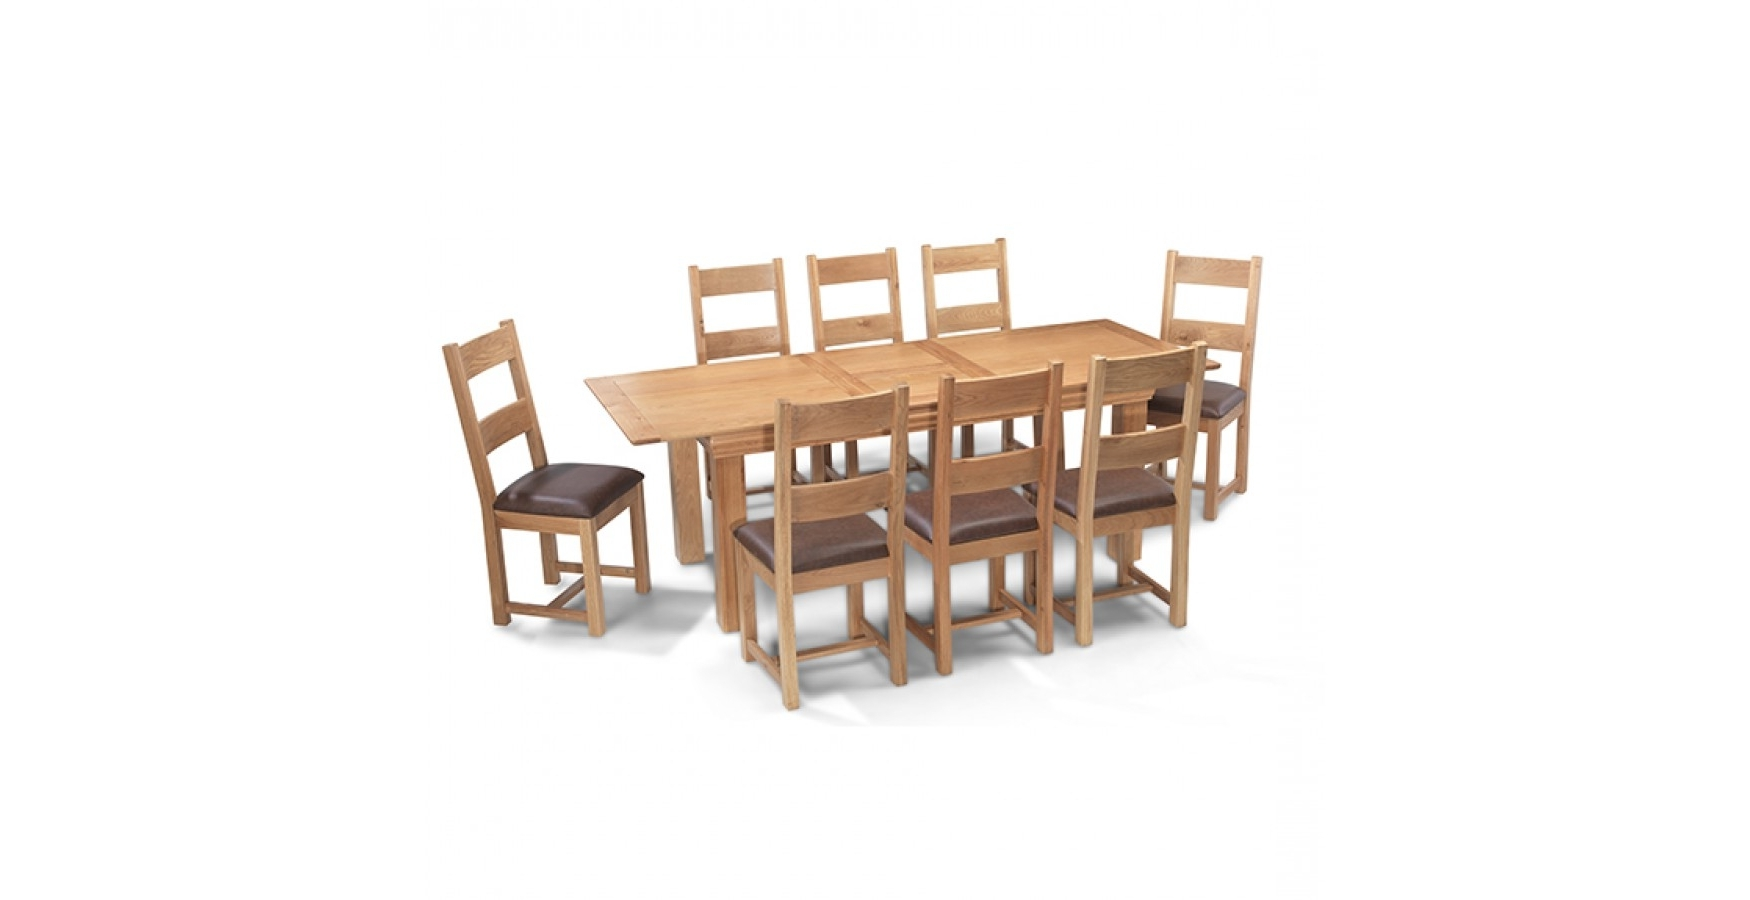 Breton Oak 180 230 Cm Extending Dining Table And 8 Chairs Intended For Popular Oak Extending Dining Tables And 8 Chairs (View 4 of 25)